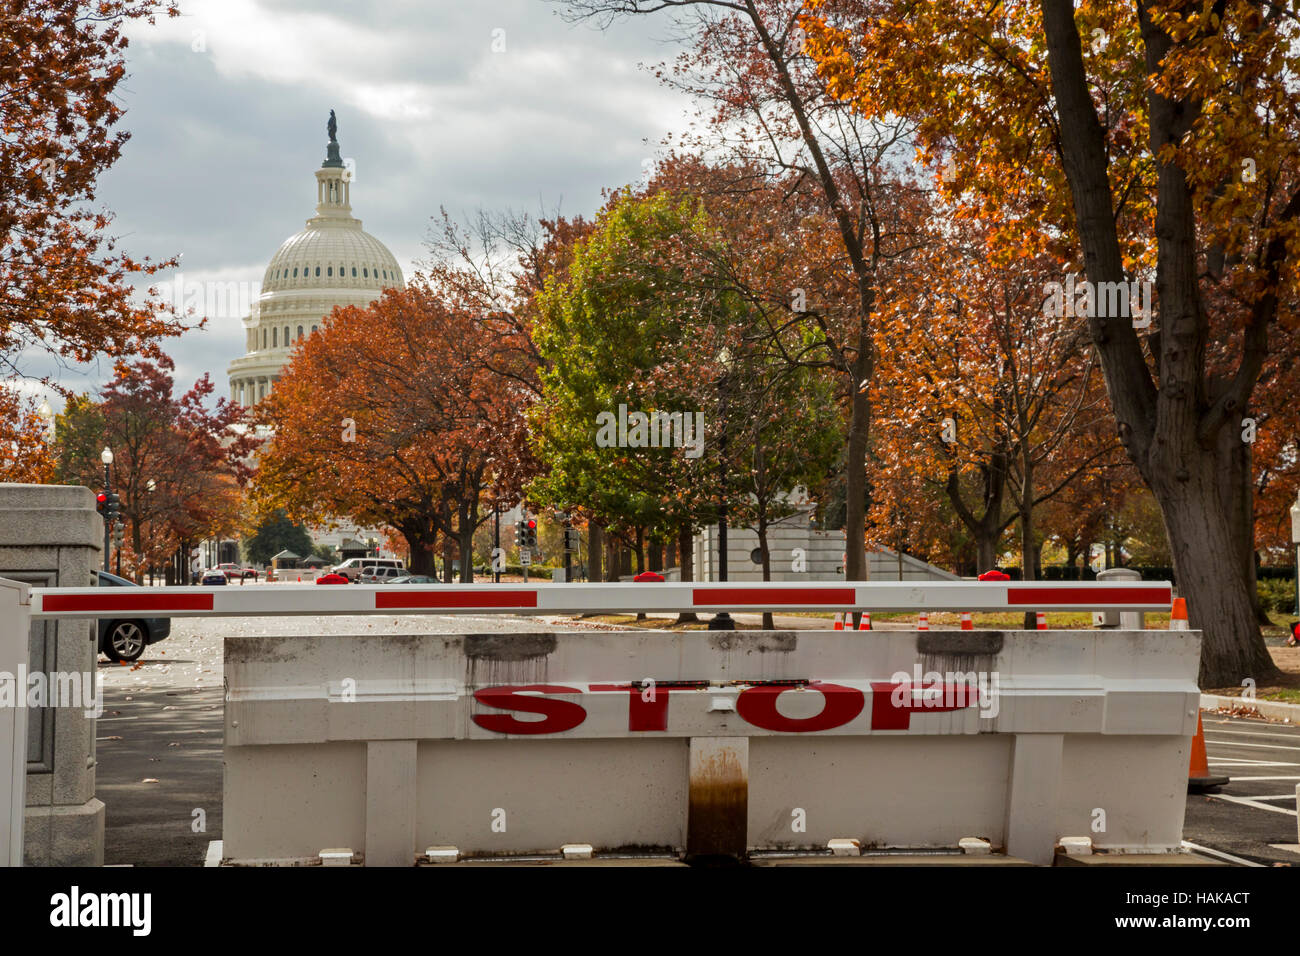 Washington, DC - A security barrier on Delaware Avenue near the U.S. Capitol building. - Stock Image